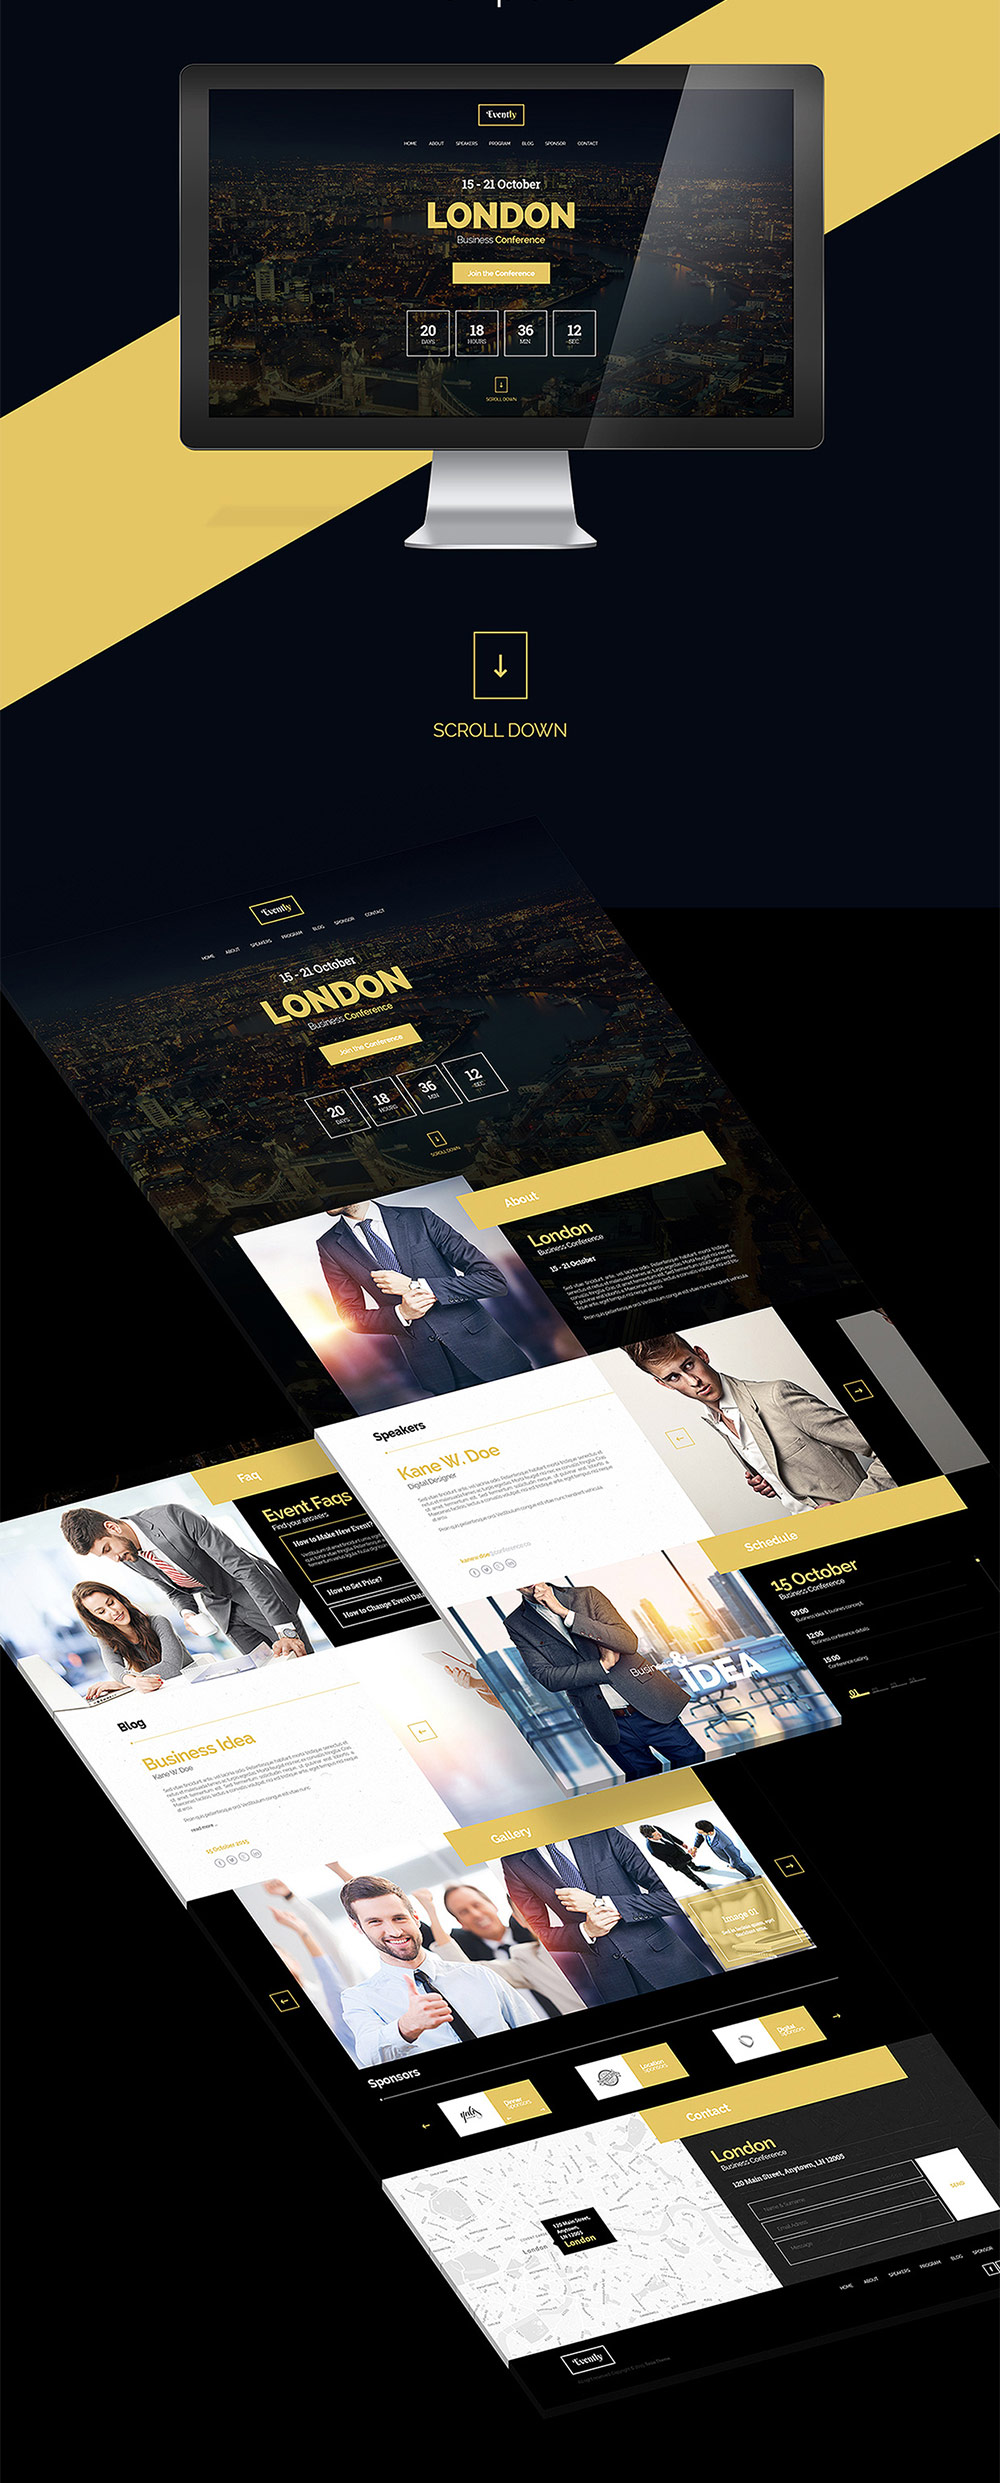 Business Event Invitation Website Template PSD Www, Website Template,  Website Layout, Website,  Free Event Invitation Templates